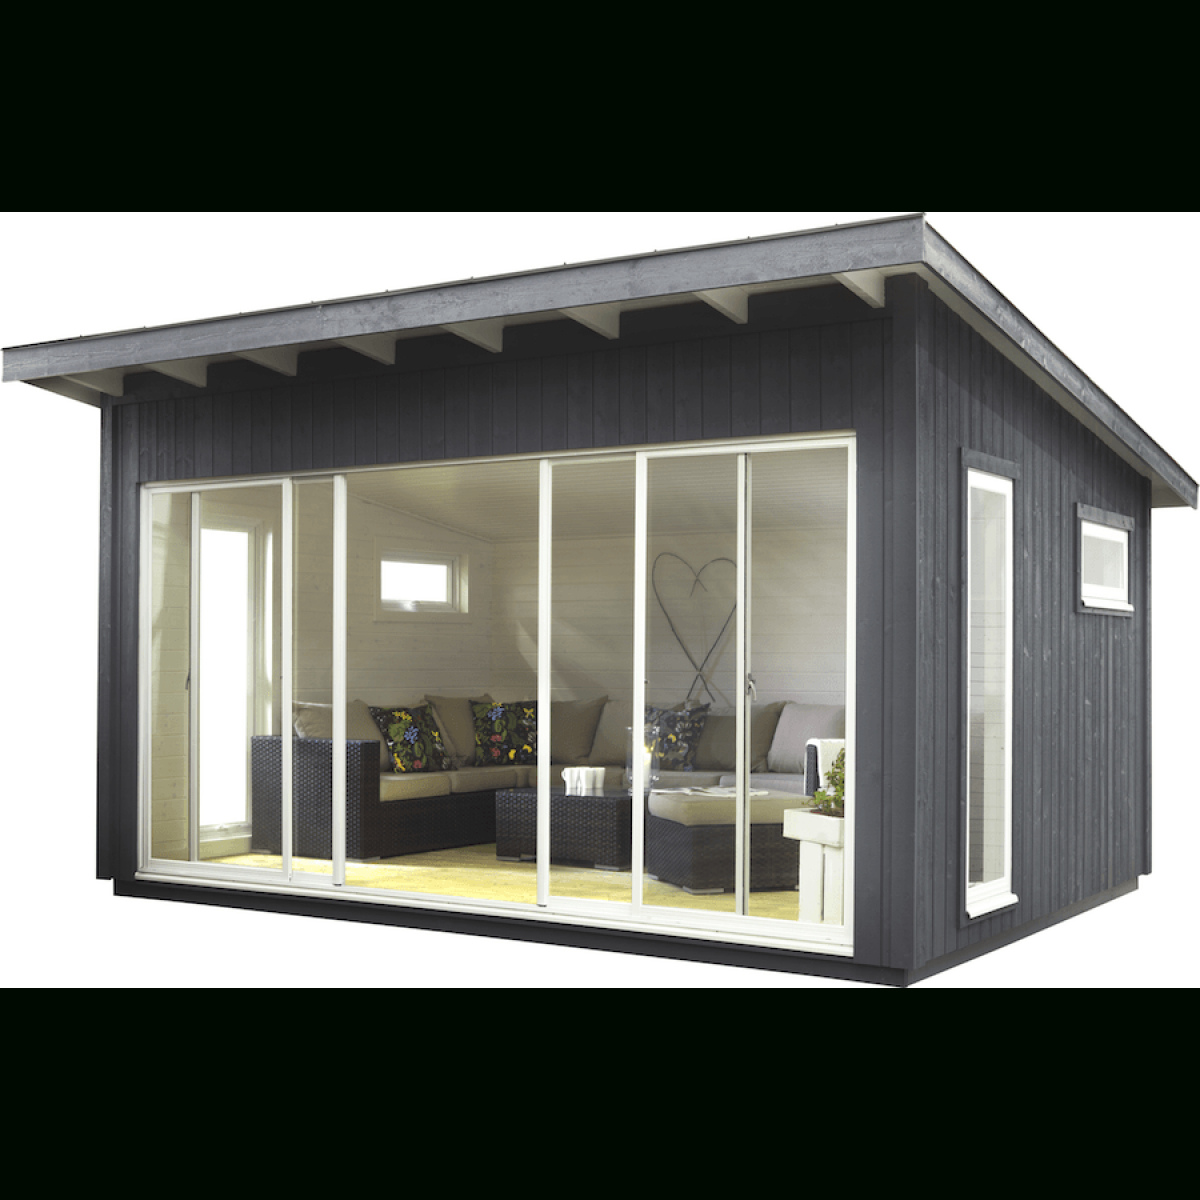 Pin By Soph 🌙 On Interior | Shed, Building A Container Home ... tout Abri De Jardin Metal 15M2